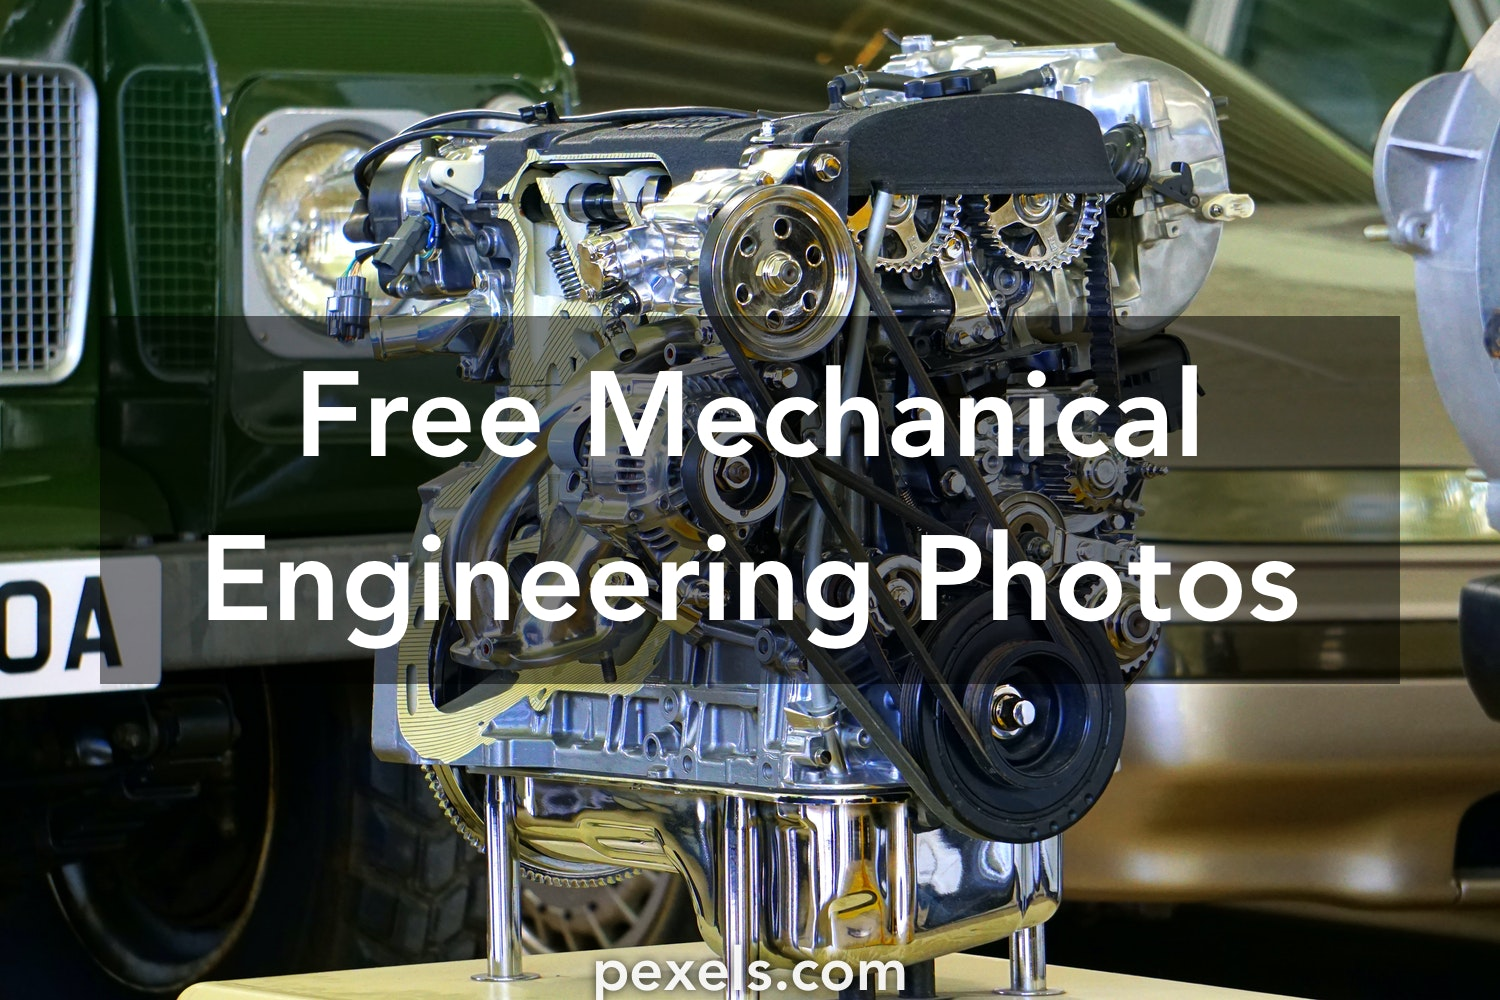 250+ Interesting Mechanical Engineering Photos · Pexels · Free Stock Photos